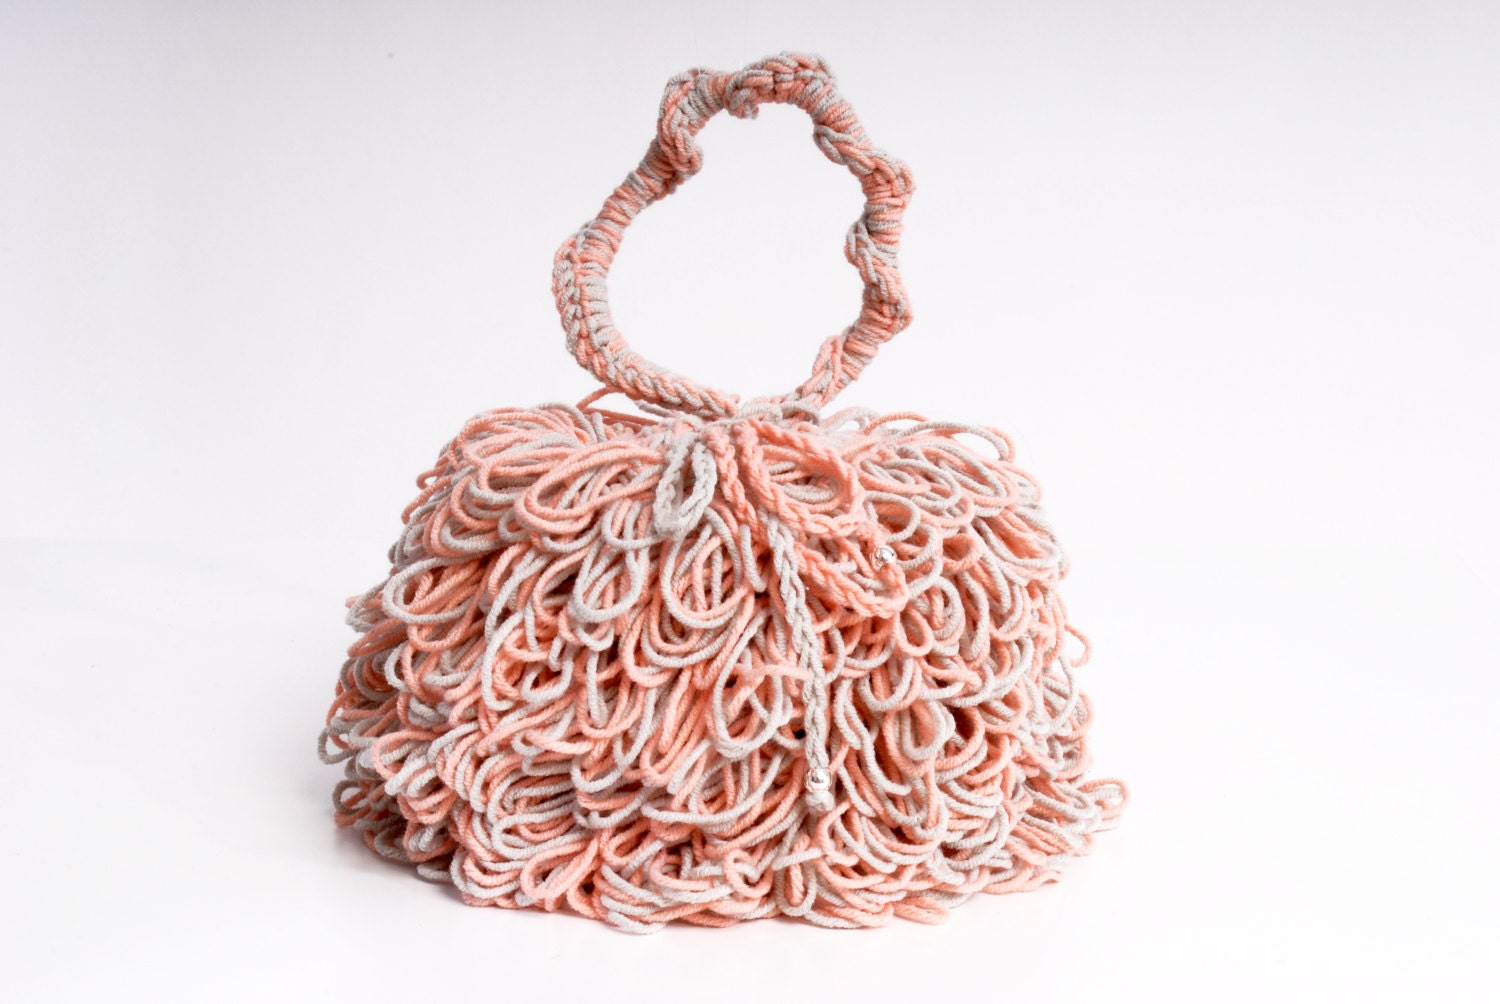 Handmade Crochet Handbags : Women crochet Bags & Purses handmade crochet bag pink by kikapaca